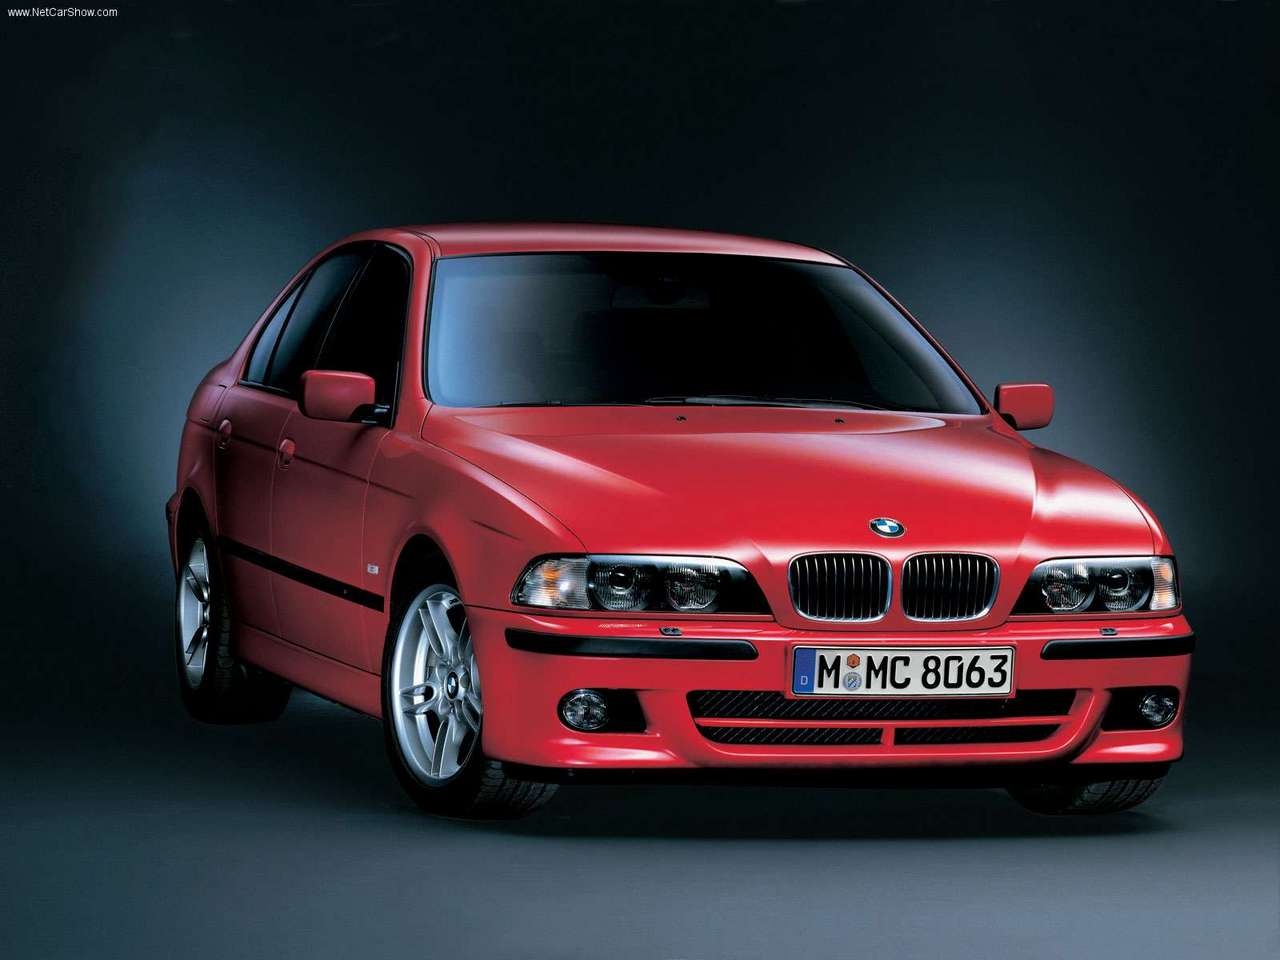 2001 bmw 540i m sportpaket. Black Bedroom Furniture Sets. Home Design Ideas